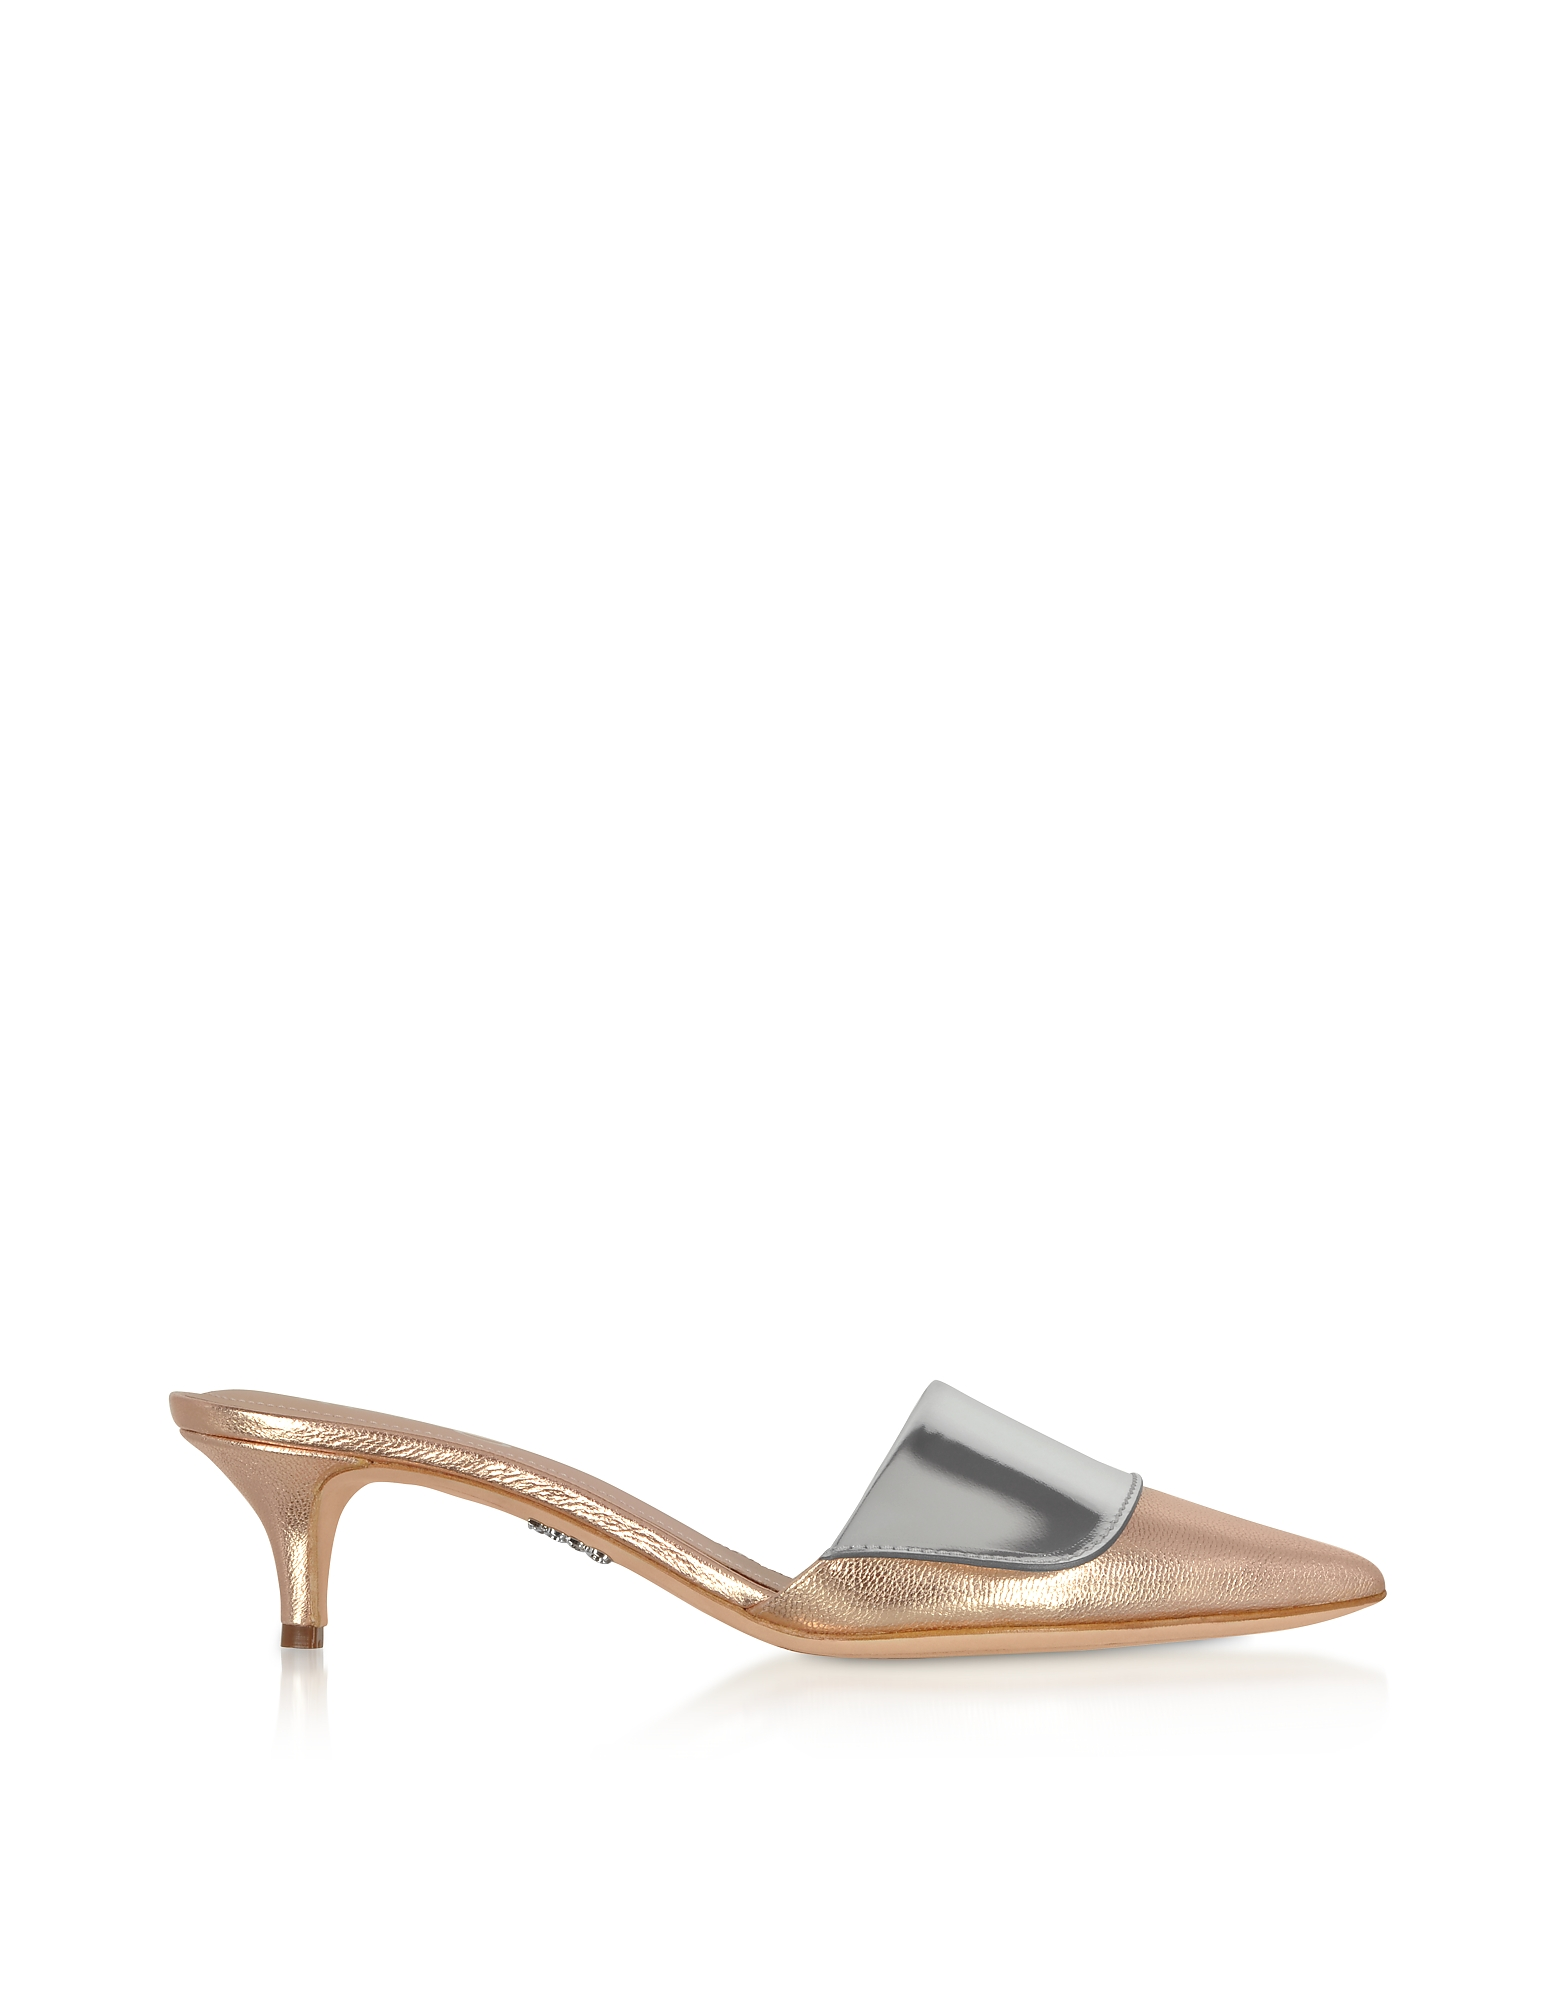 Rose Gold & Silver Laminated Leather Kitten Heel Mules